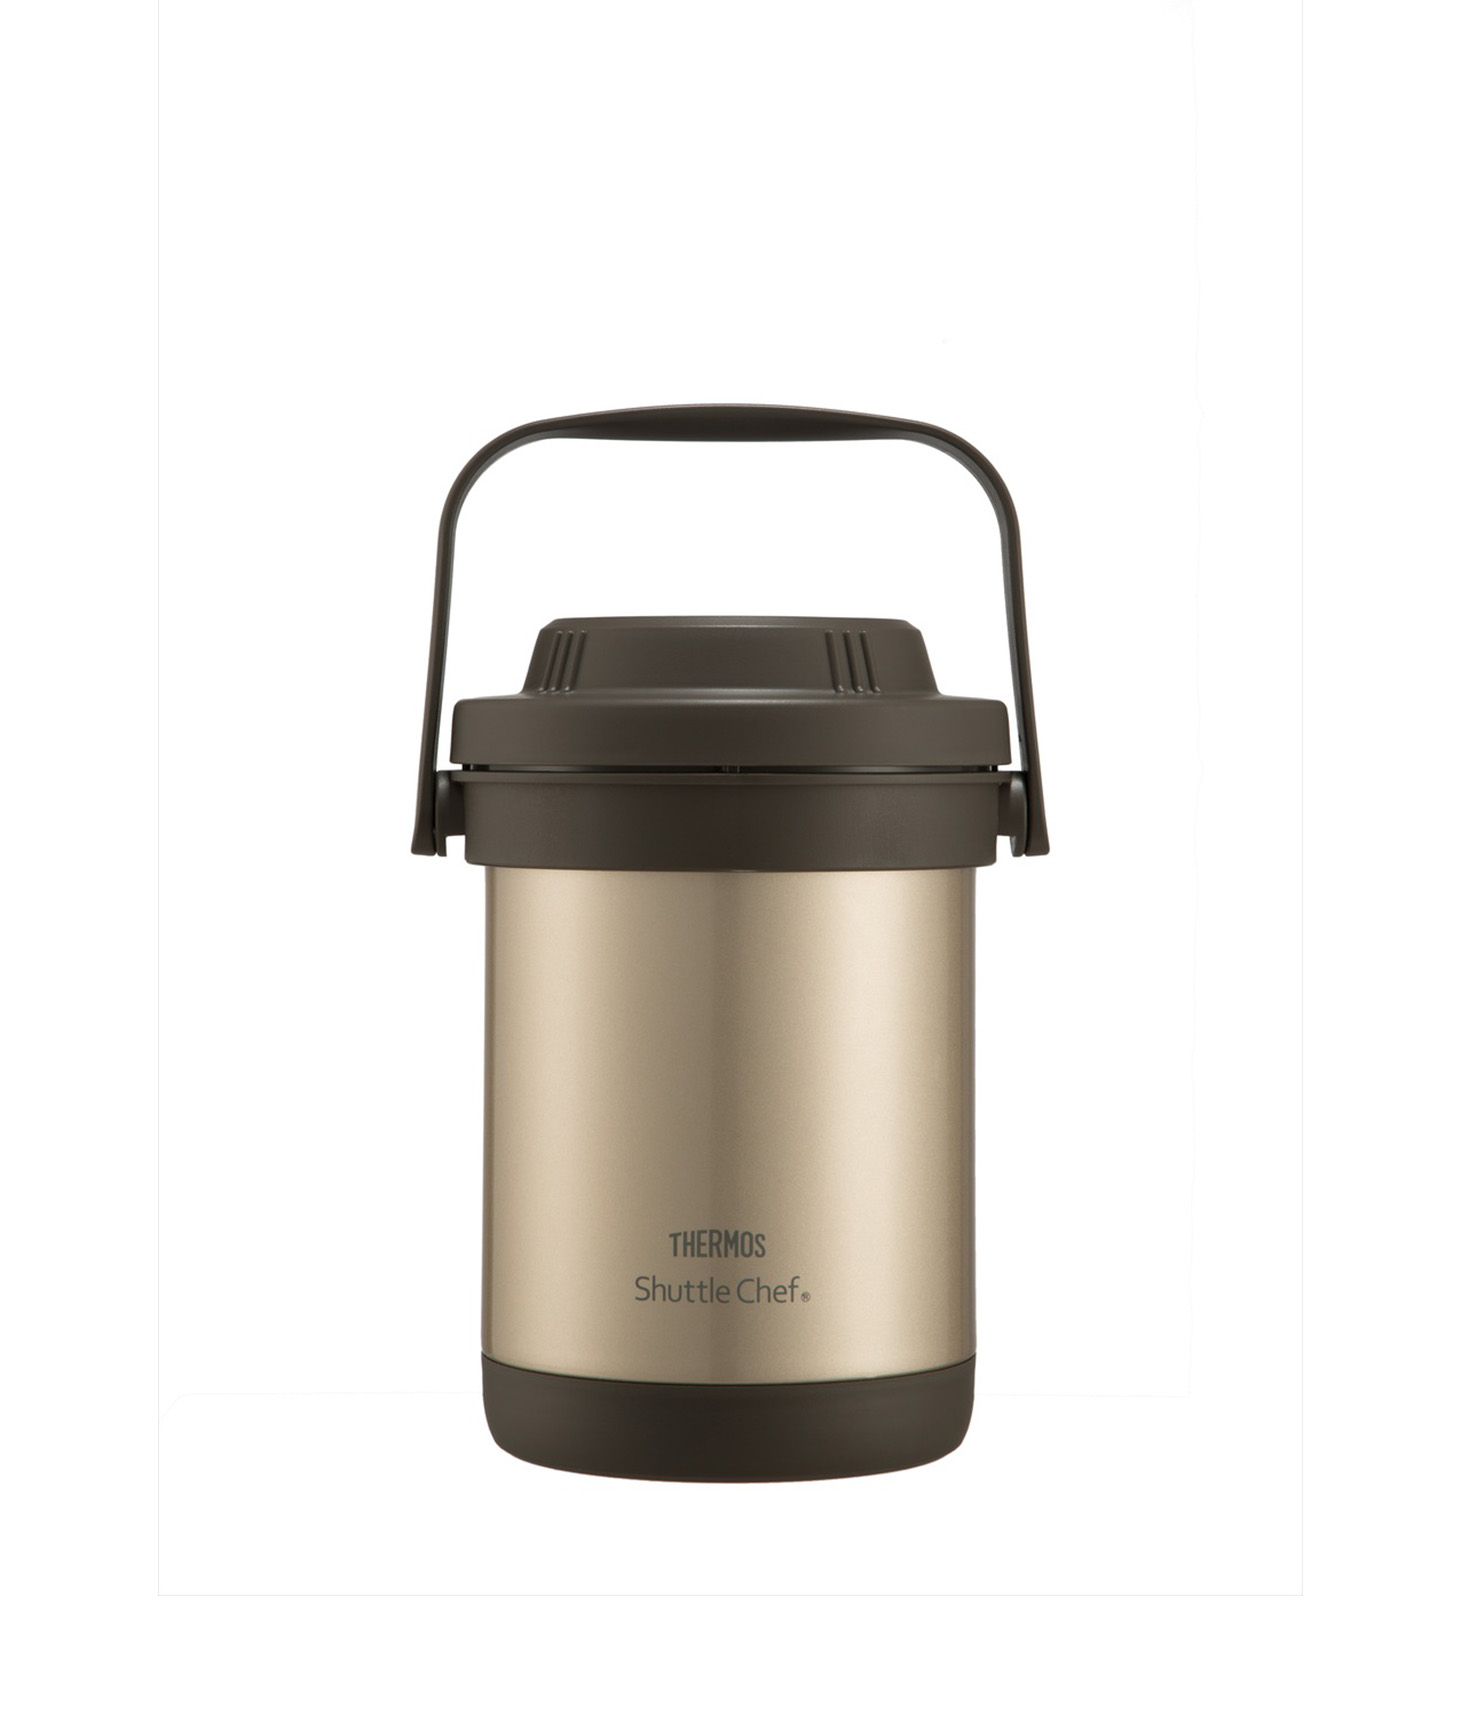 Insulated Thermal Cooker Shuttle Chef